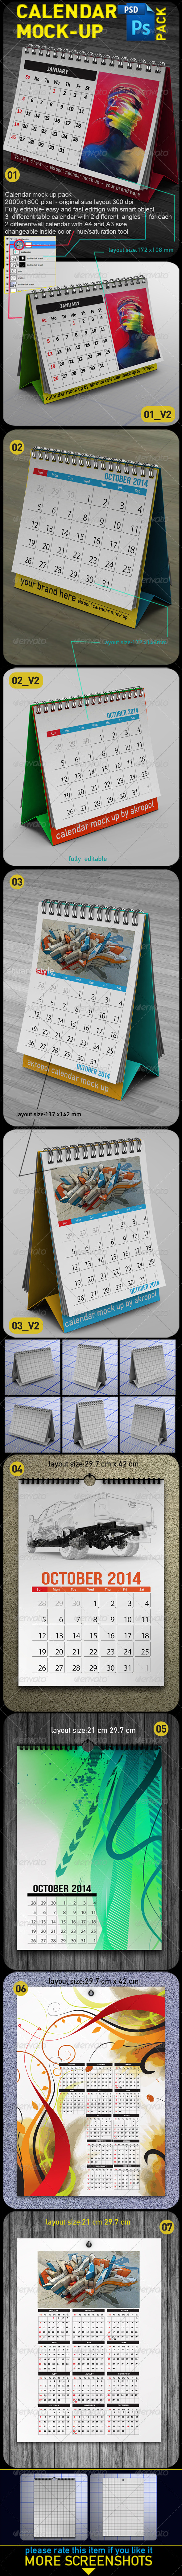 Calendar Mock Up Pack - Product Mock-Ups Graphics